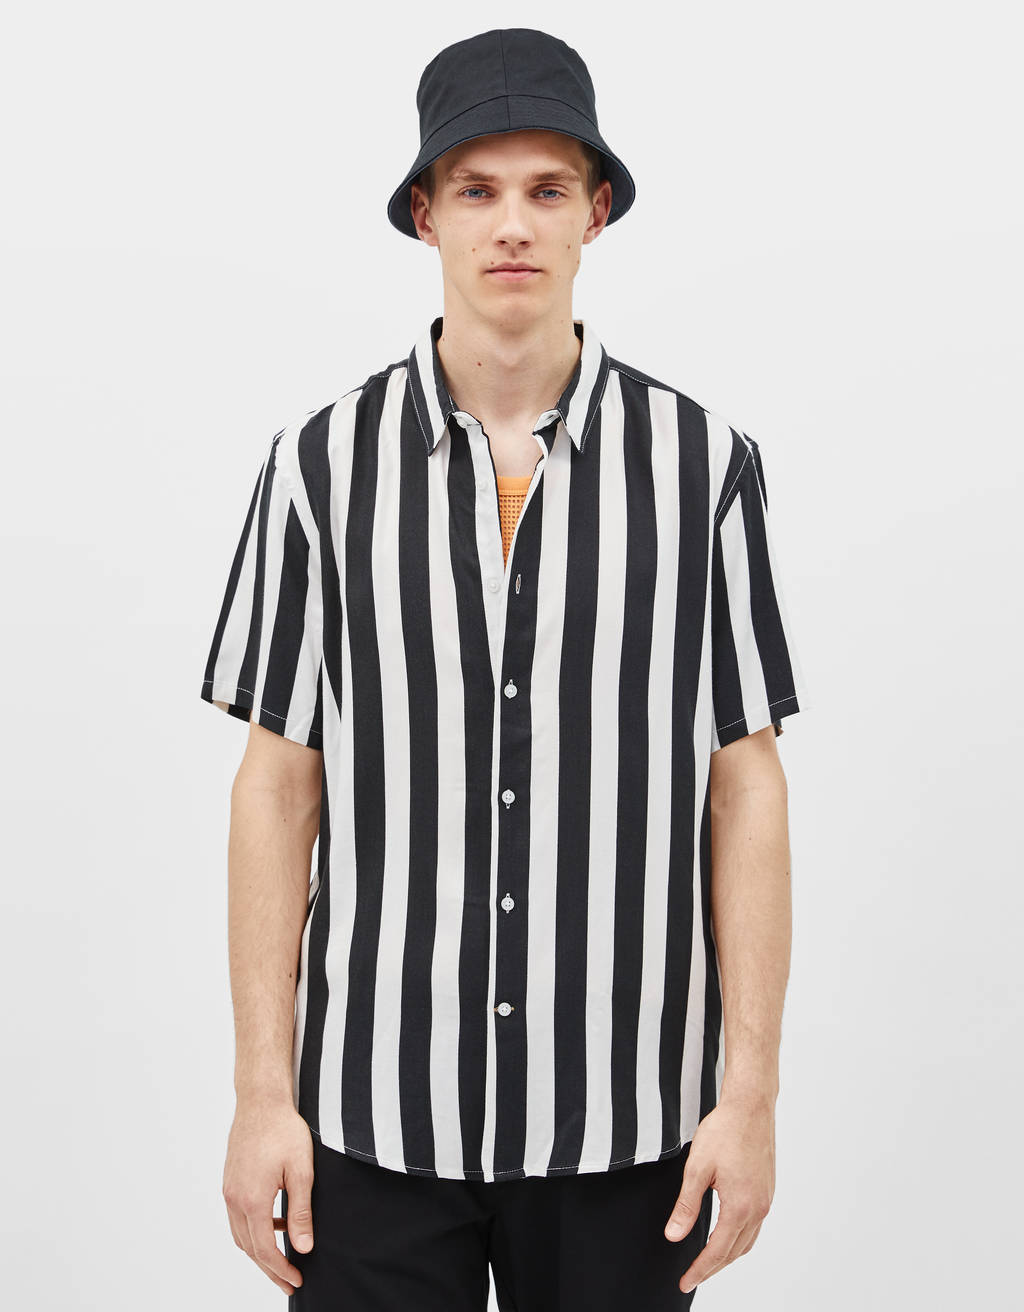 Flowing short sleeve shirt